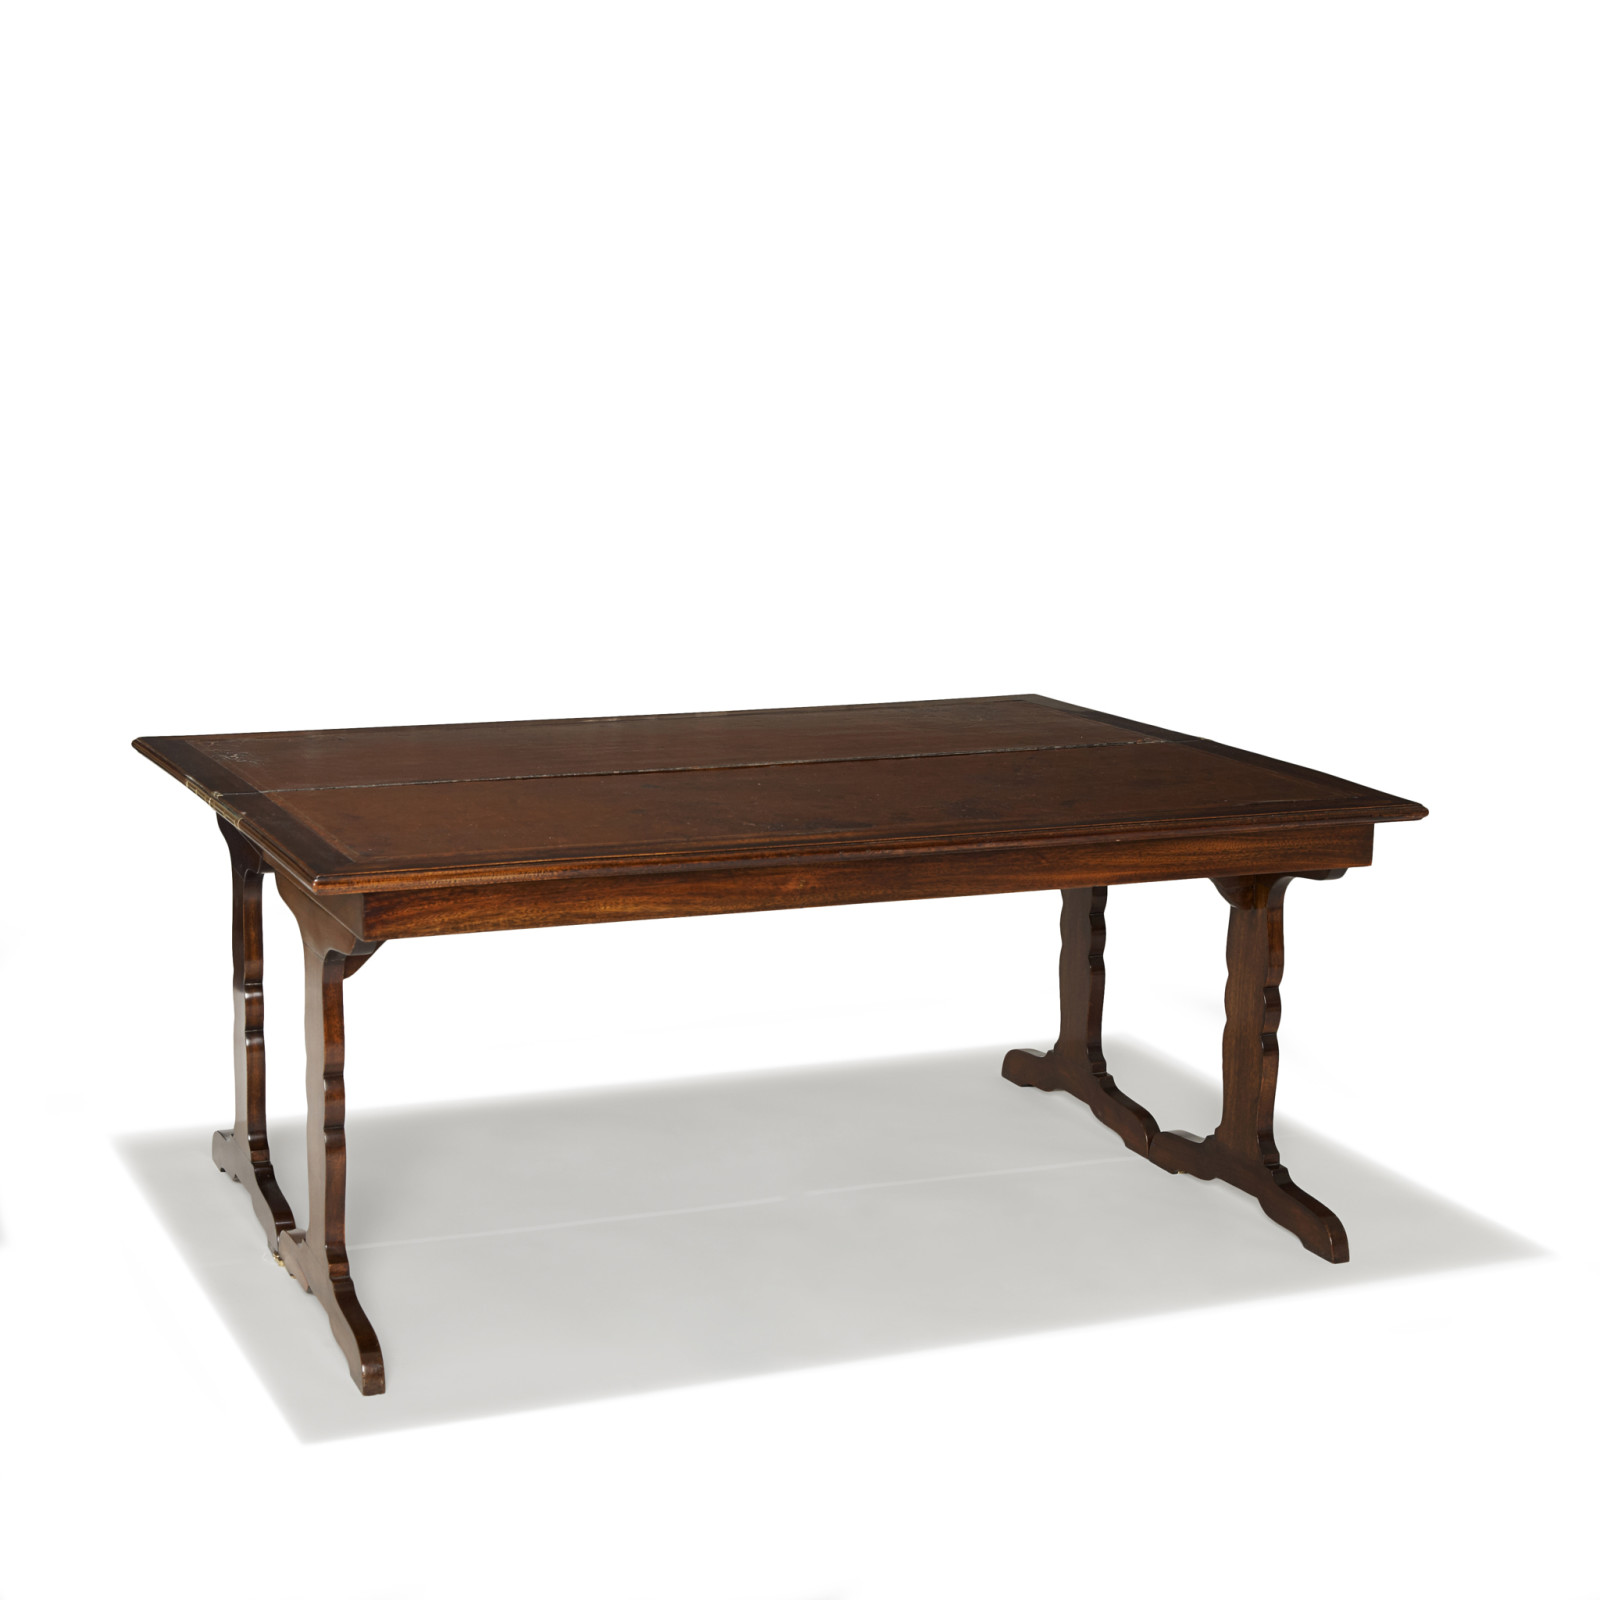 Gallery Bac Flip Top Coffee Table In Figured Mahogany By Jean Michel Frank